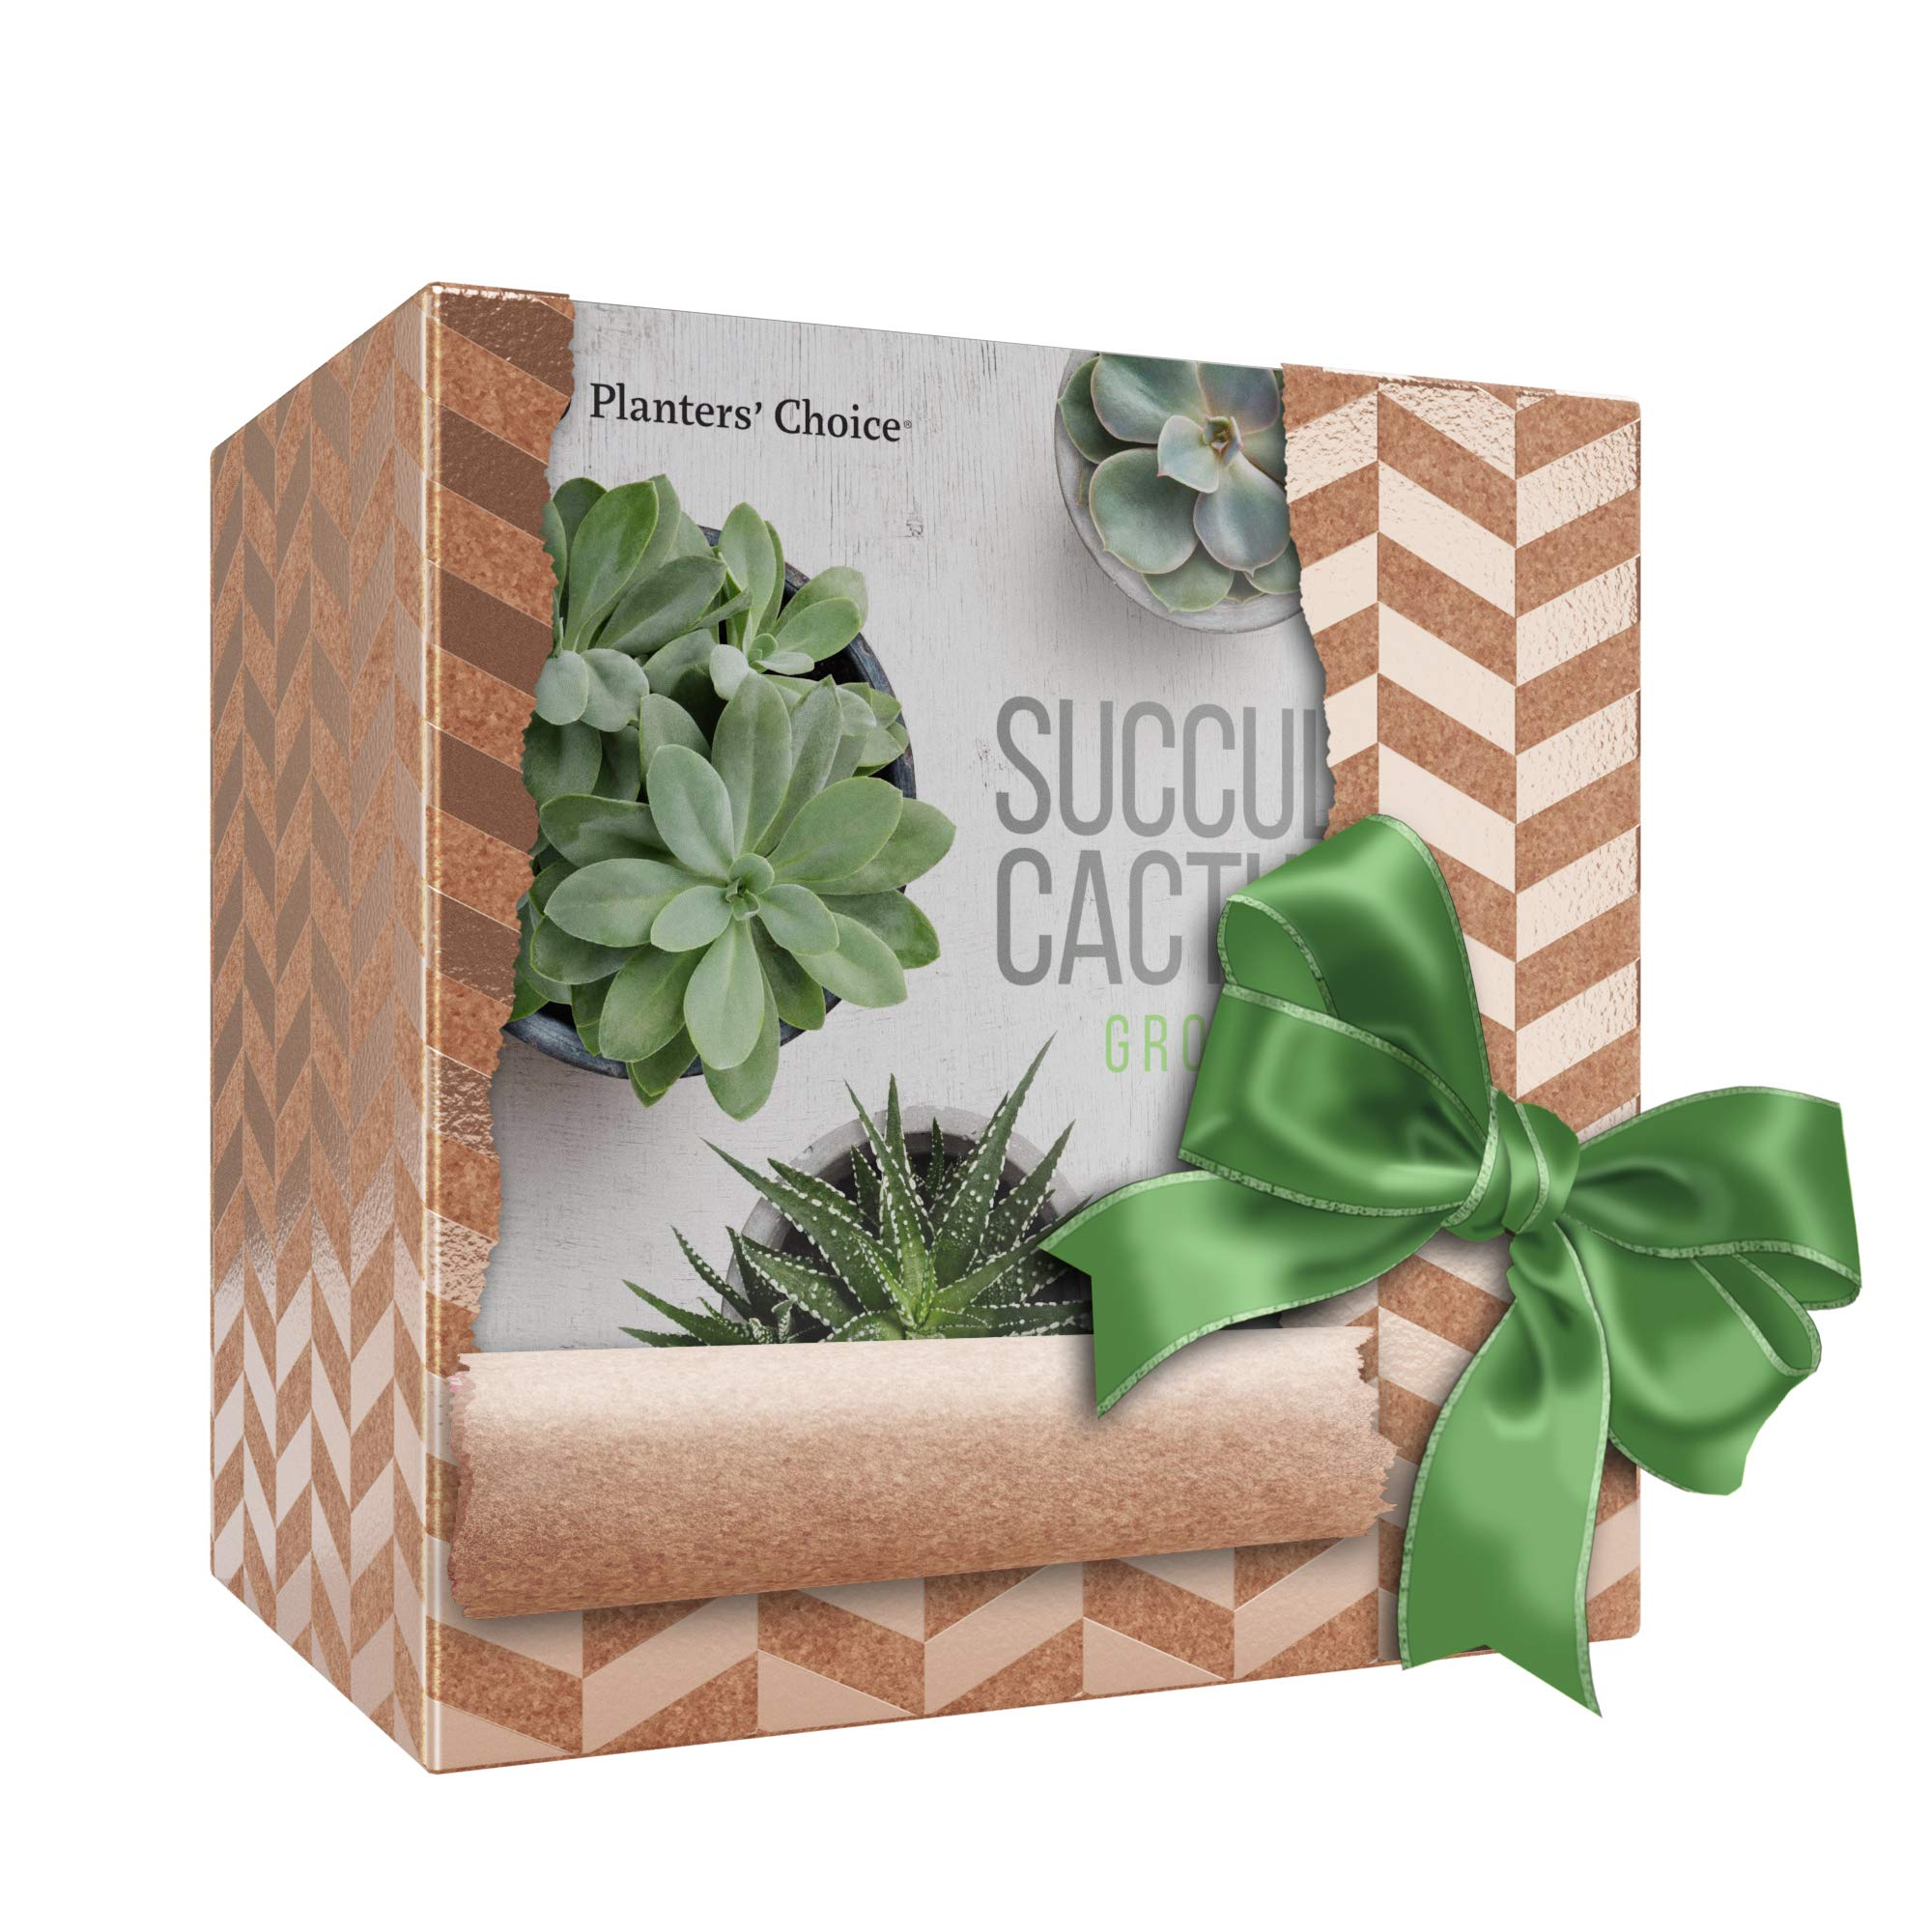 Succulent & Cactus Growing Kit with Moisture Meter - Grow 4 Plants - Includes Everything Needed to Grow Successfully - Great Gift (Cactus & Succulent) by Planters' Choice (Image #8)